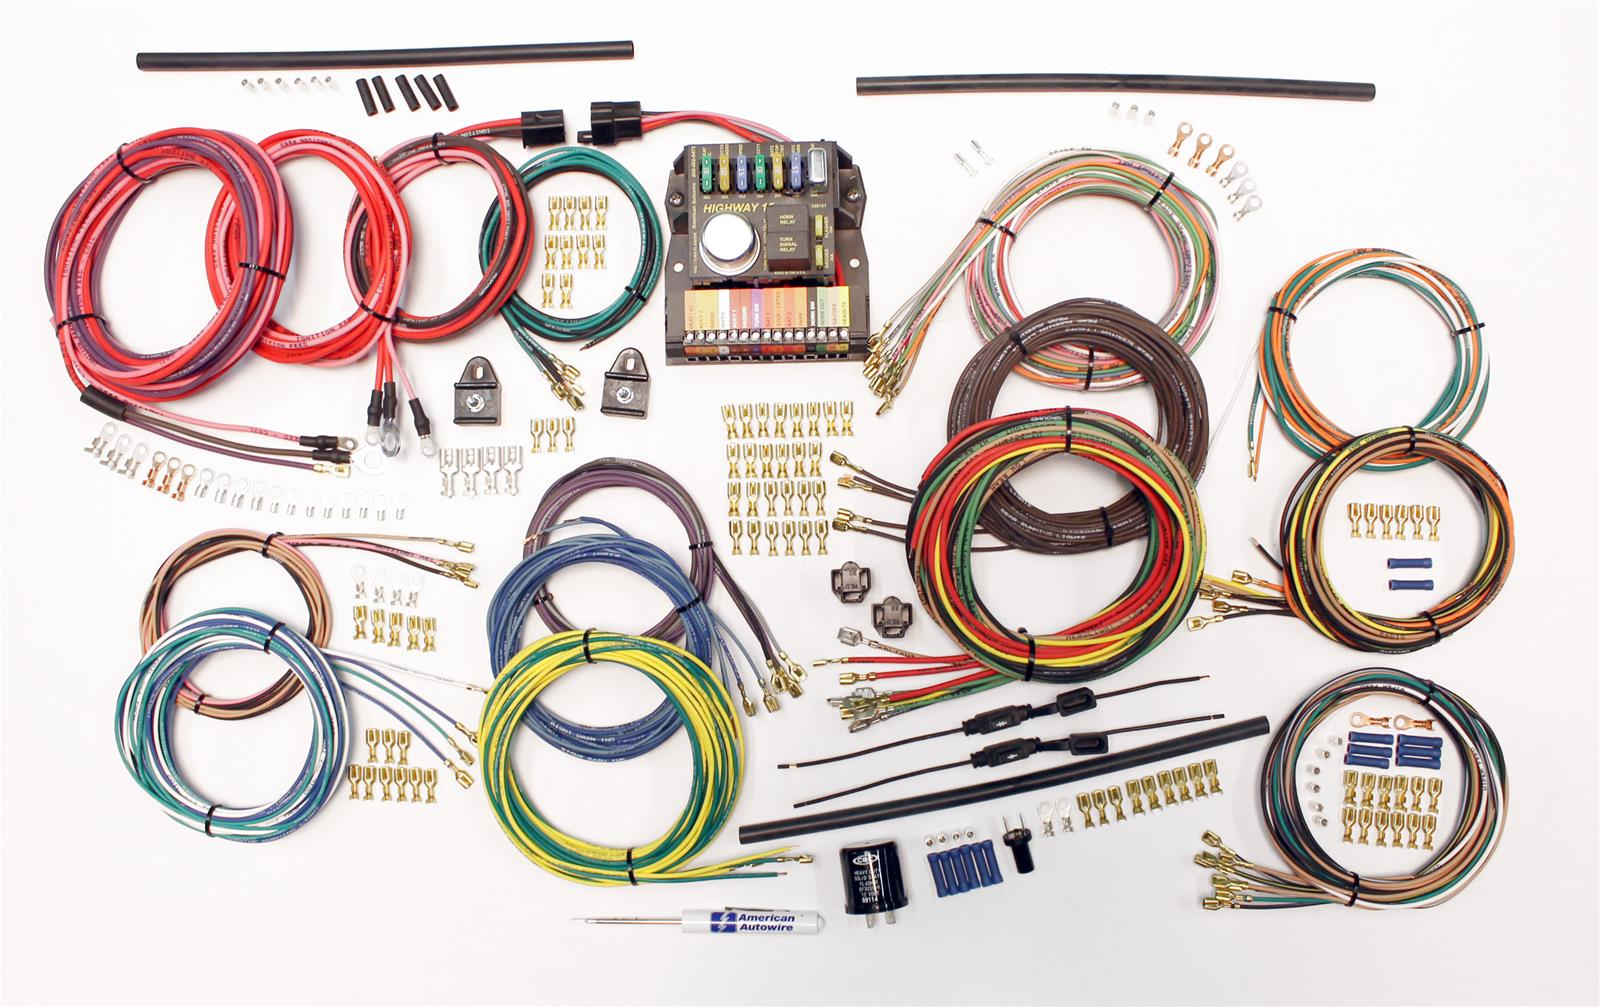 aww 510419_xl american autowire classic update series wiring harness kits 510419